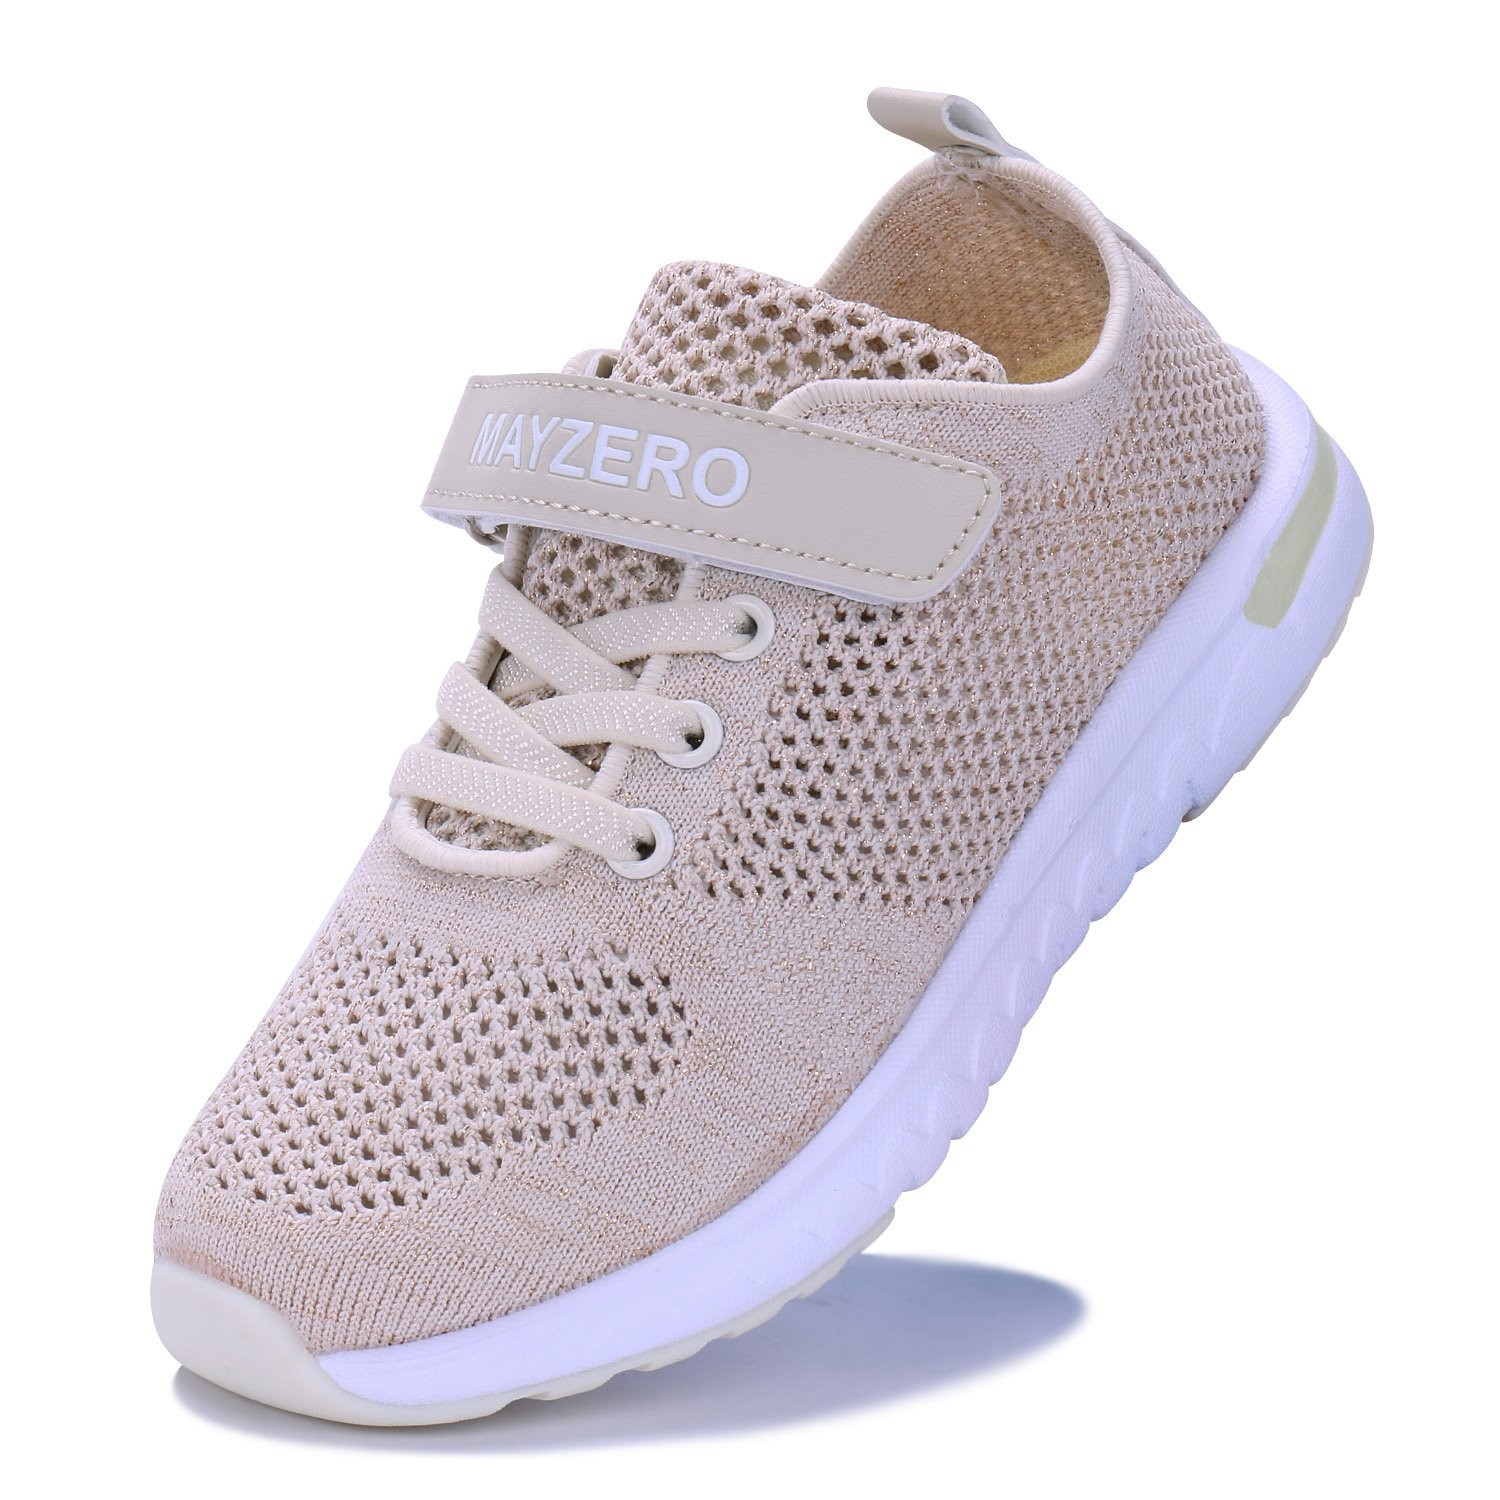 56945e703523b Kids Running Tennis Shoes Lightweight Casual Walking Sneakers for Boys and  Girls (Little Kid/Big Kid)